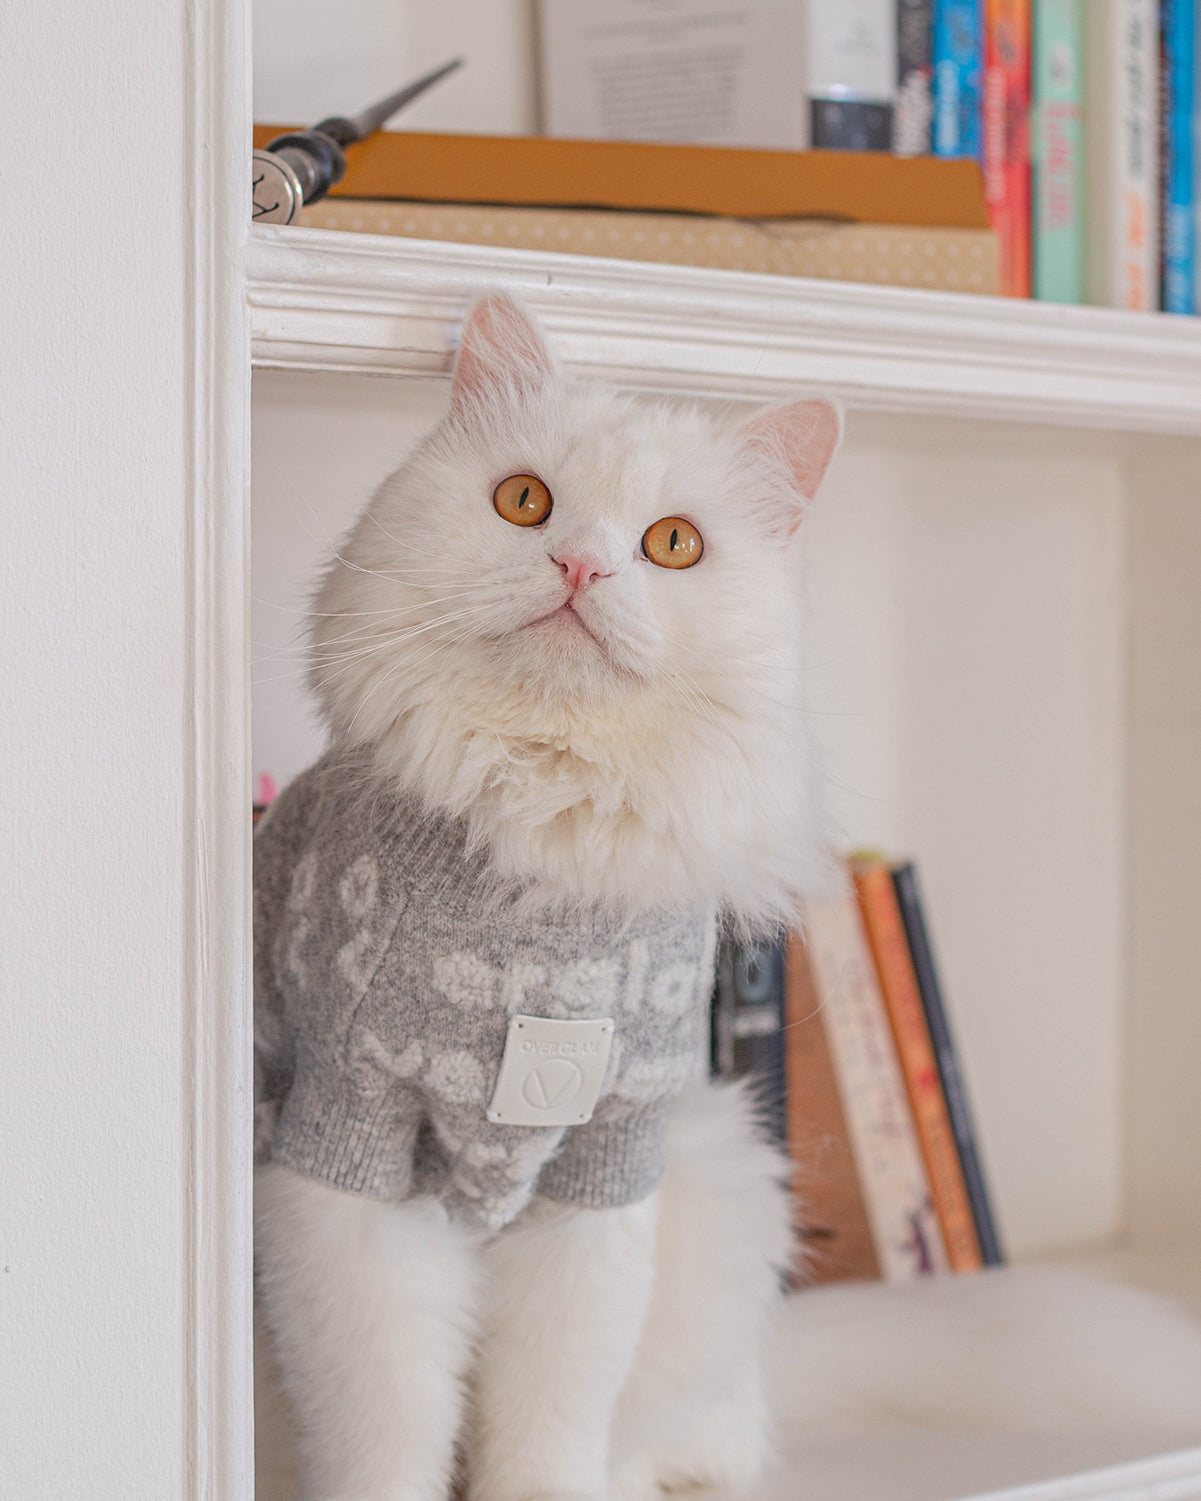 A cat with an OverGlam jumper posing on a library